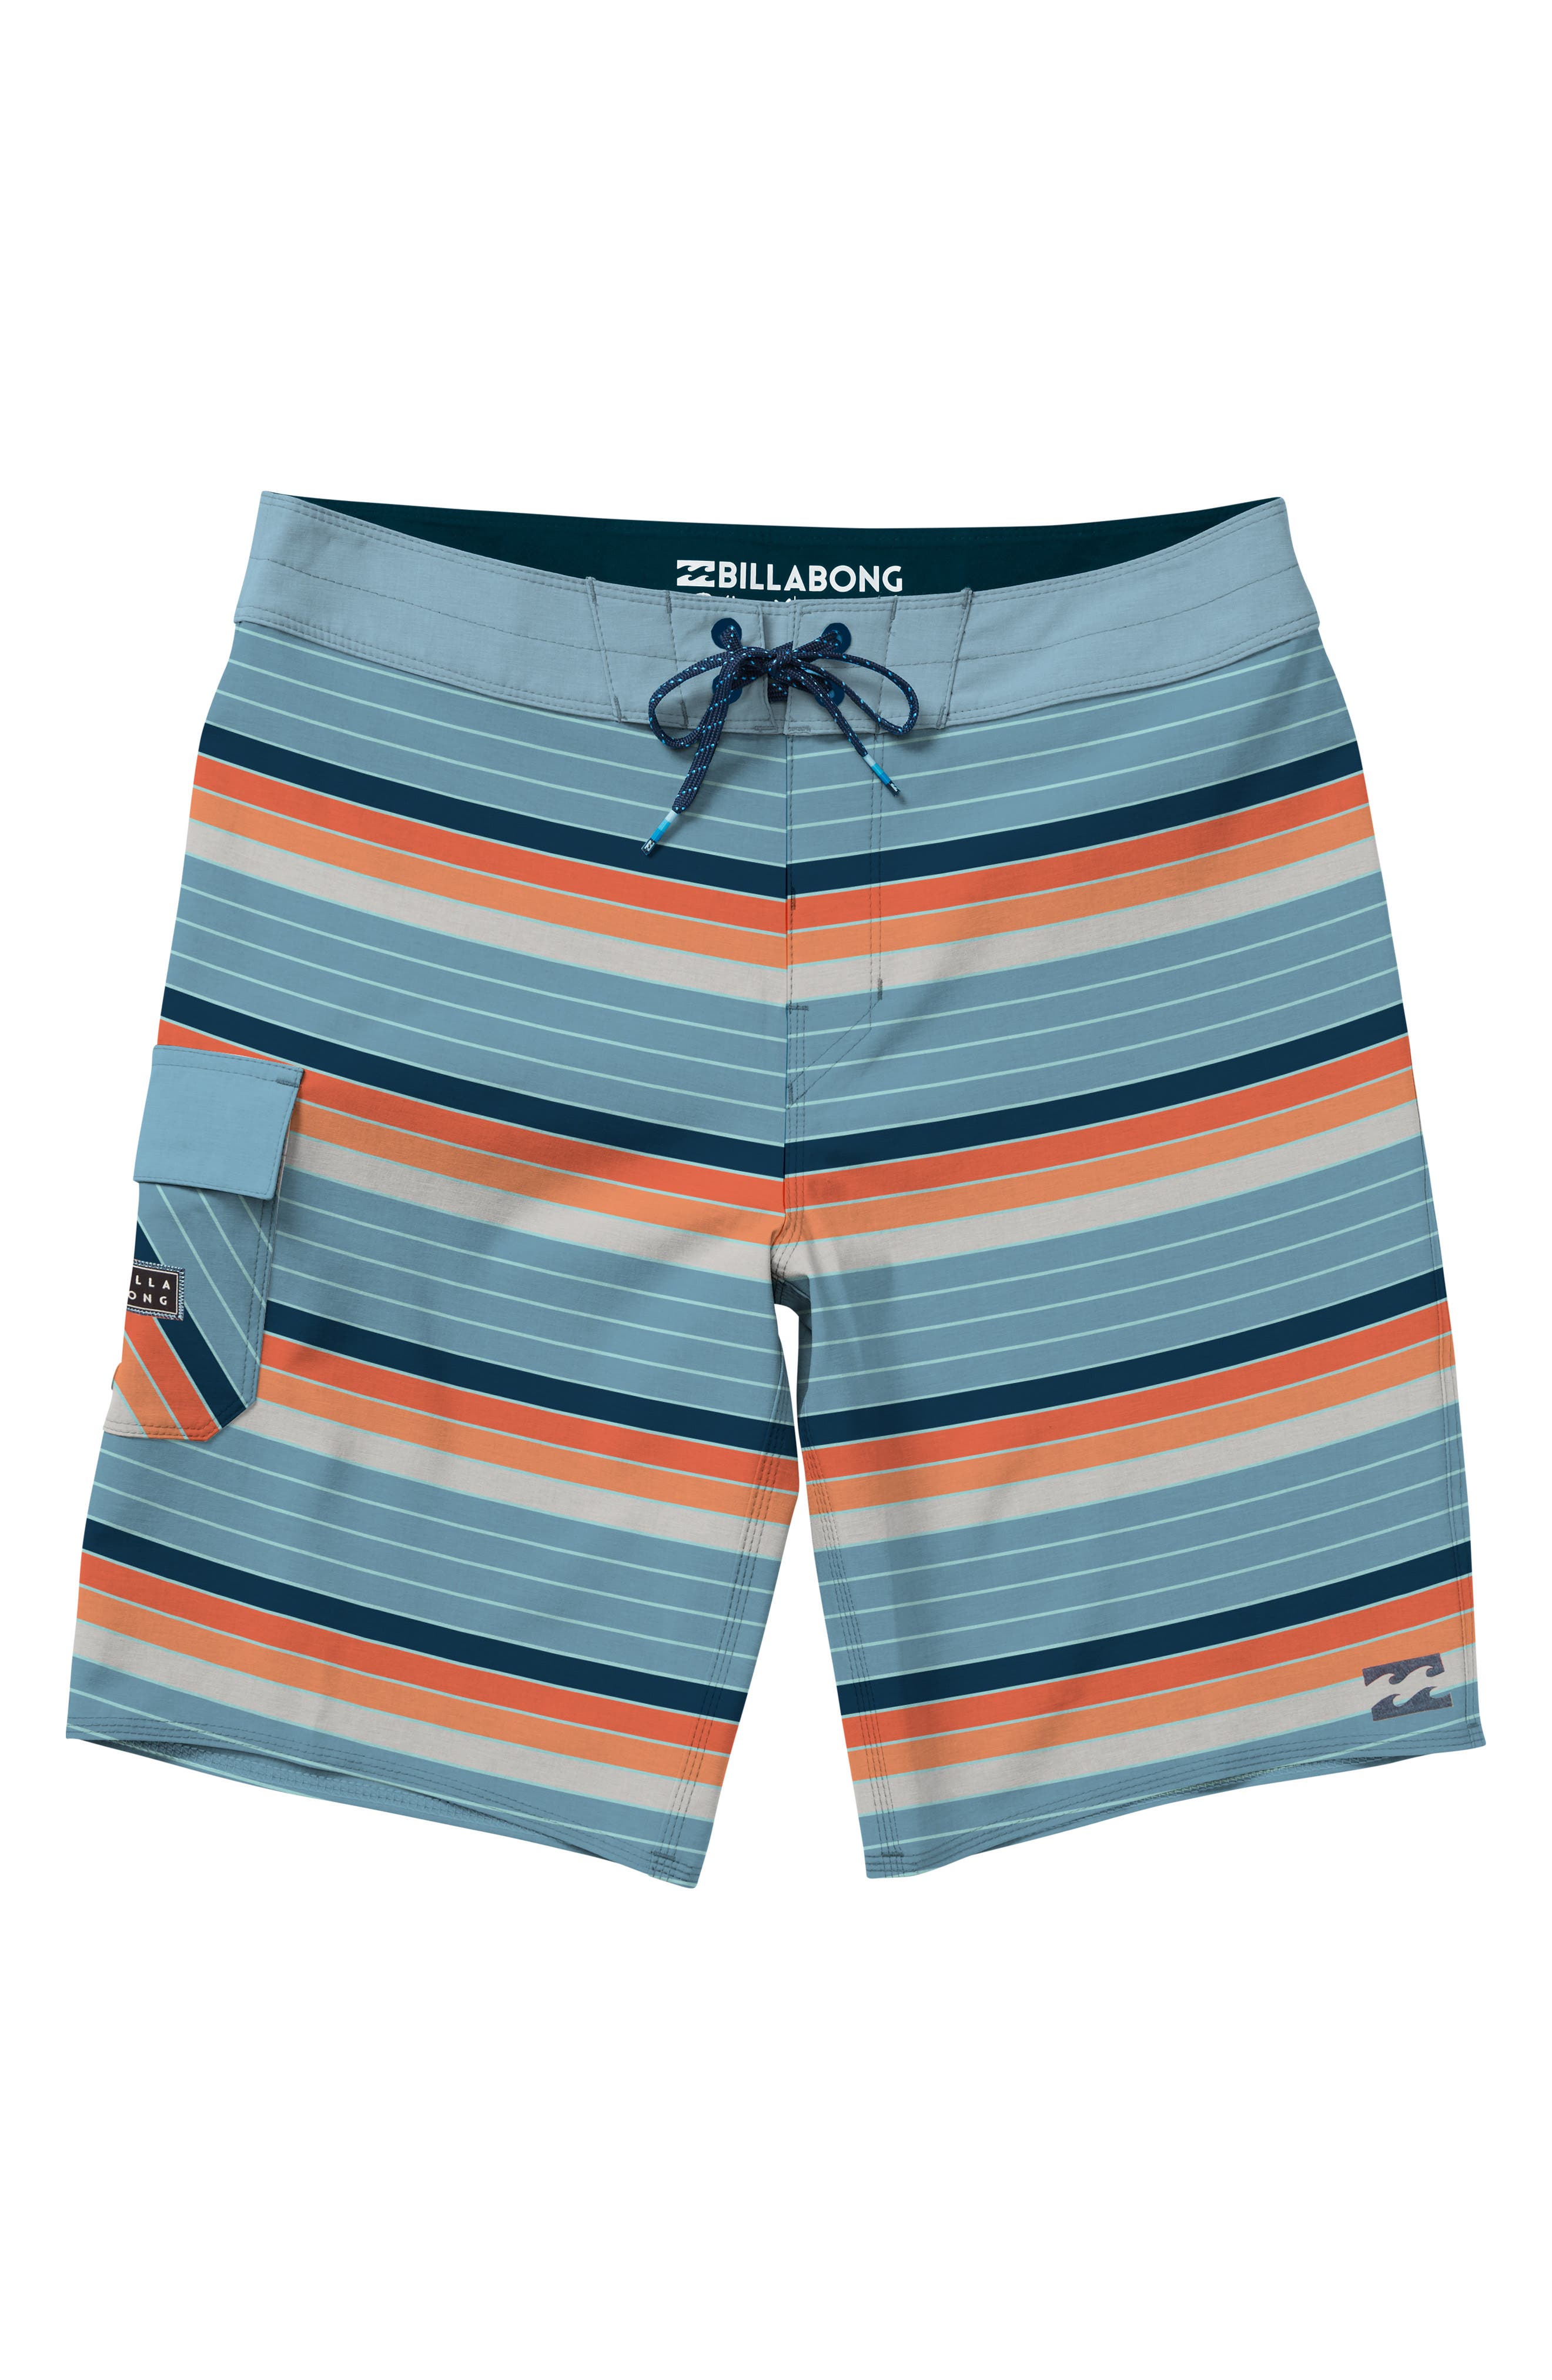 All Day OG Stripe Board Shorts,                         Main,                         color, Coral